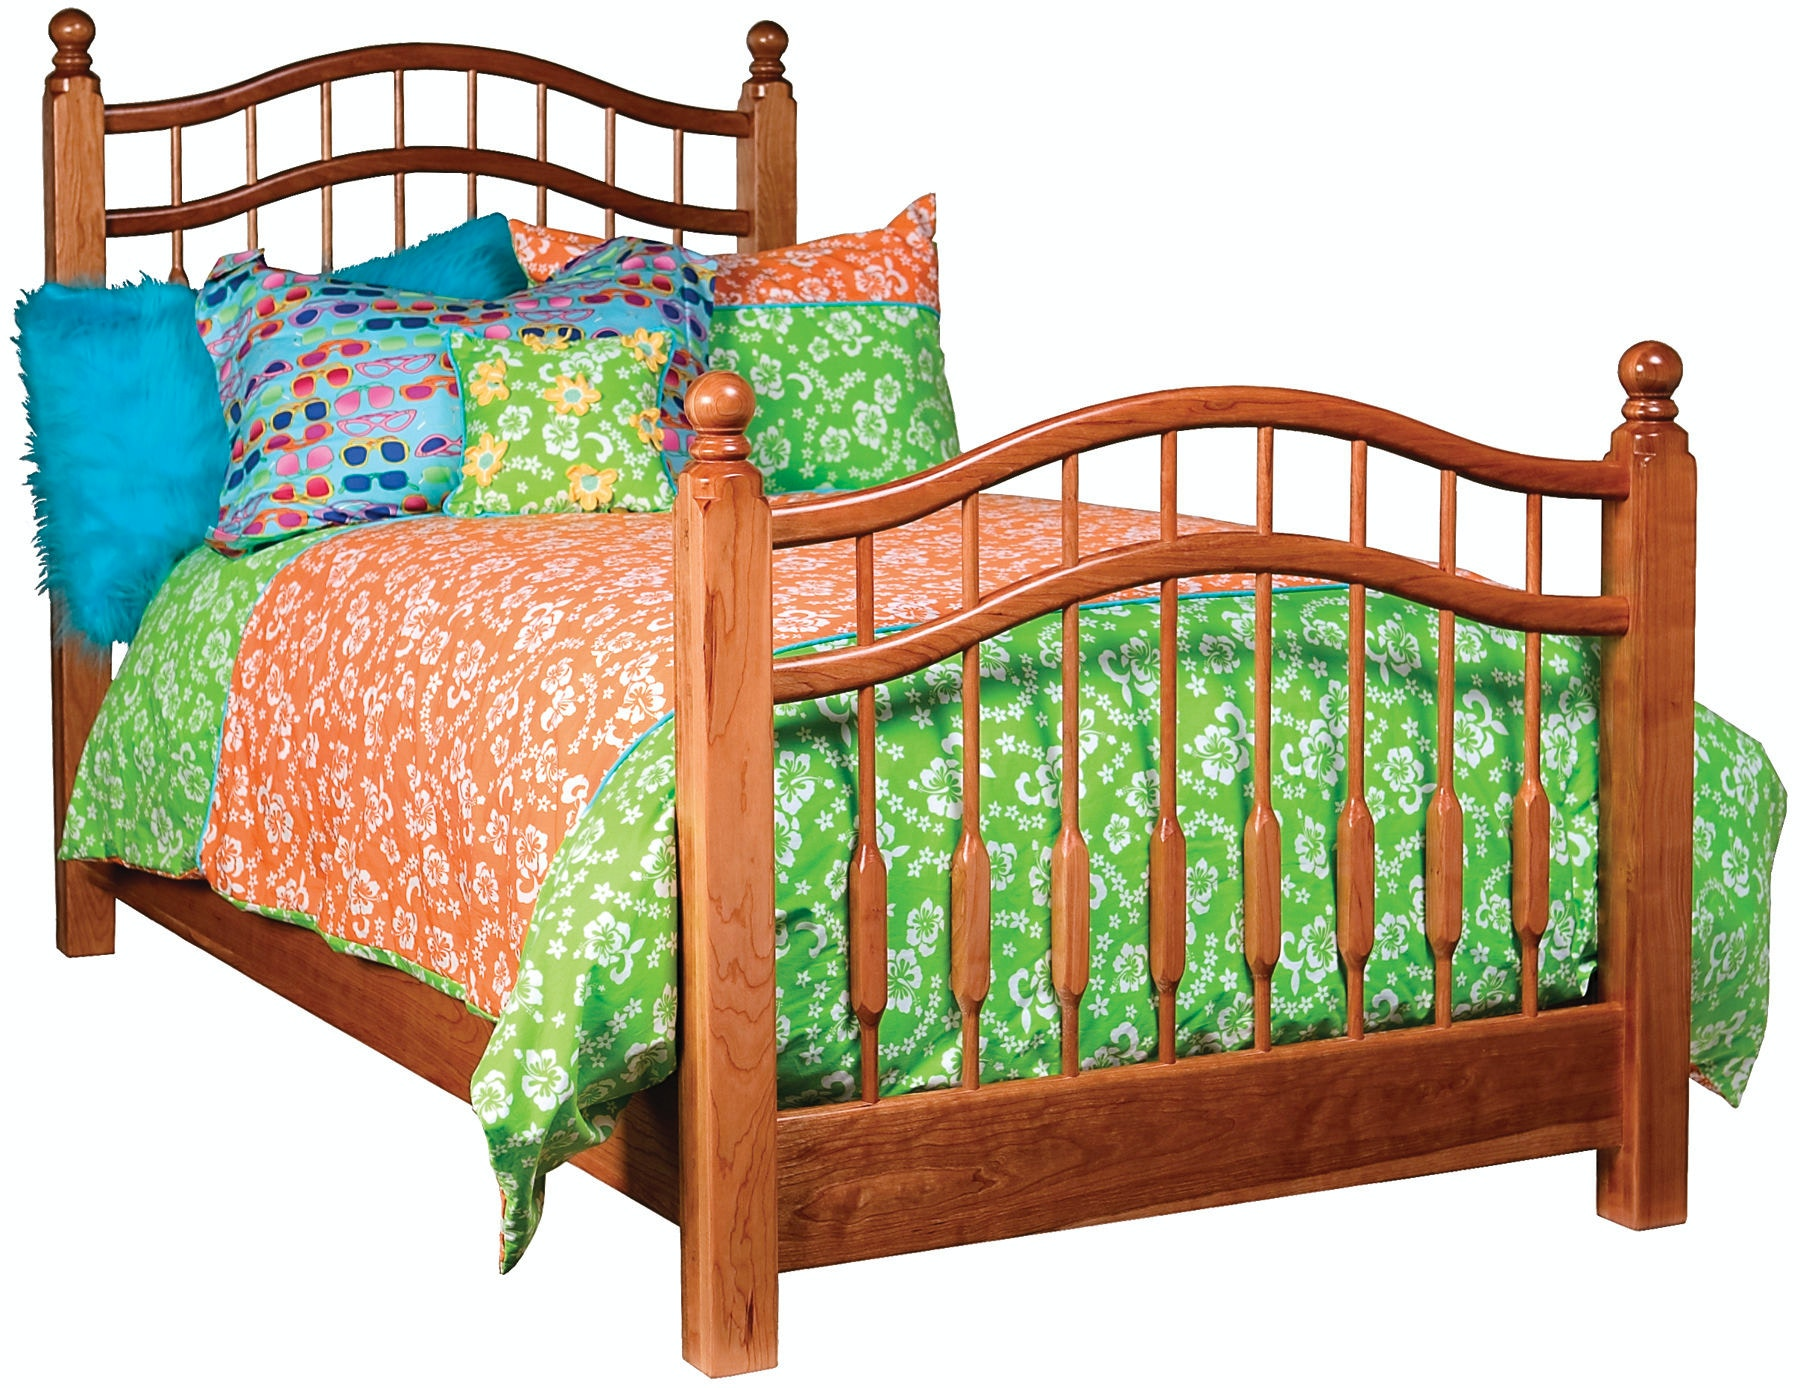 abalone spindle bed aw1030 - Spindle Bed